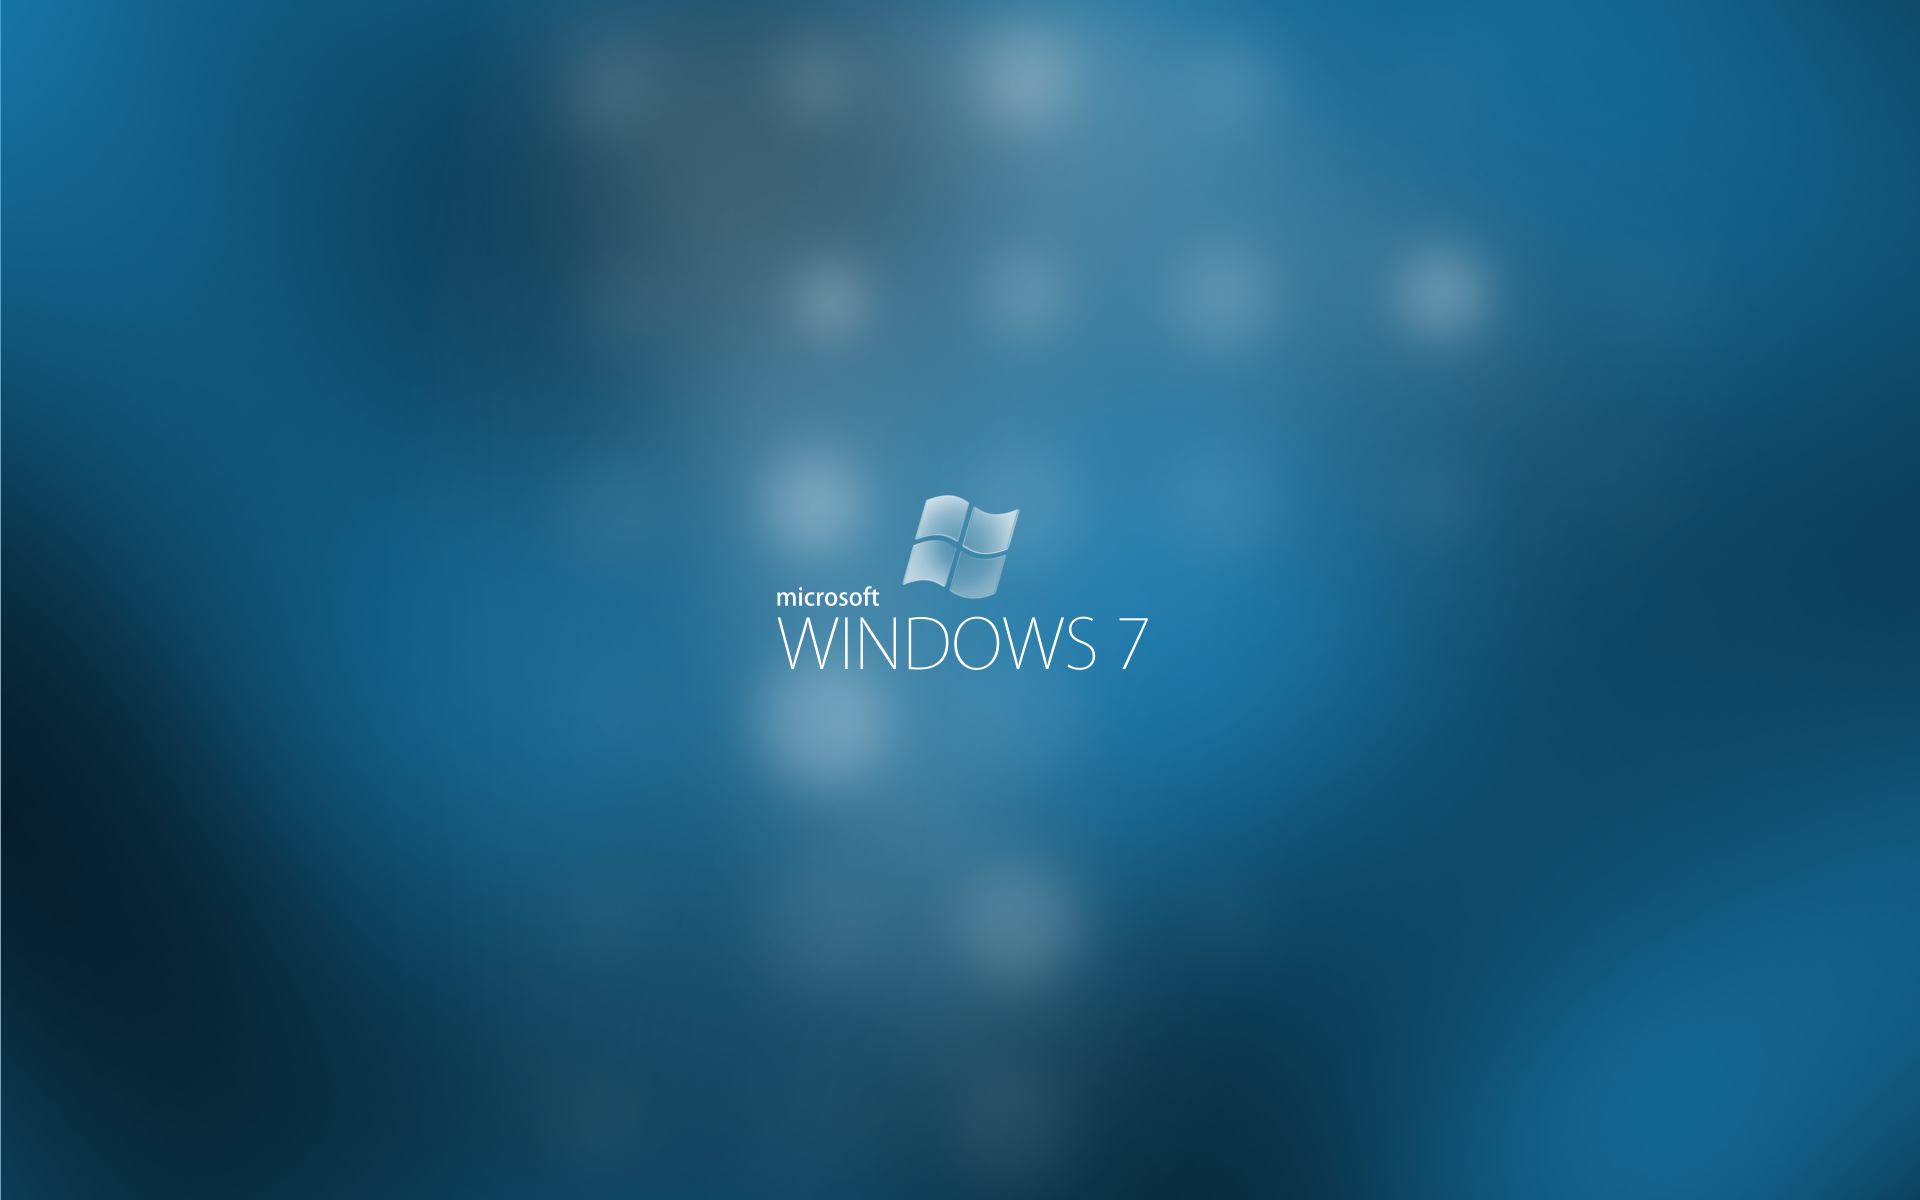 Windows 7 Wallpaper 10.